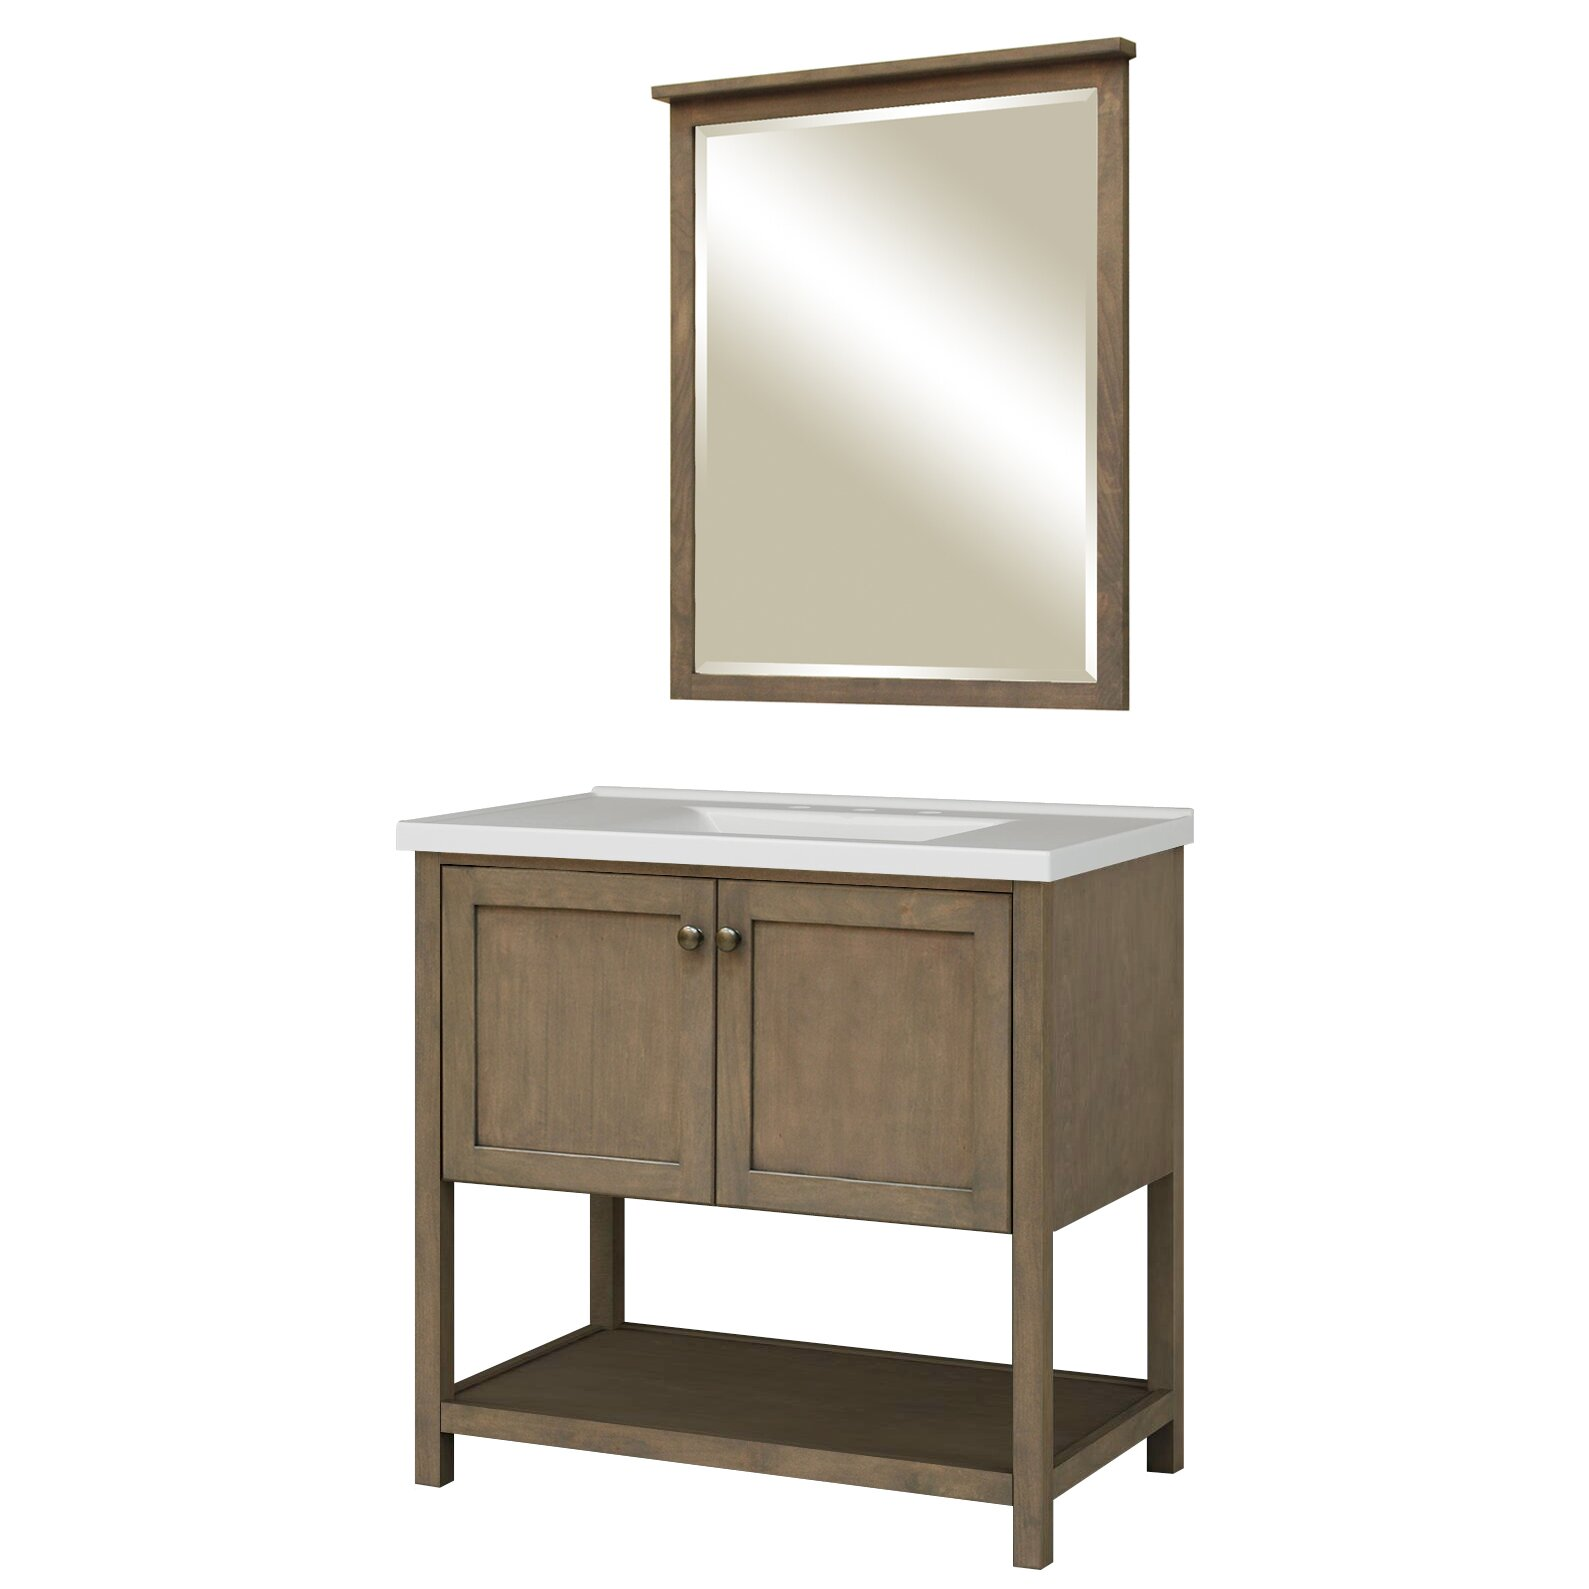 Sunny wood premier tops 37 bathroom vanity top with for Bath vanities with tops